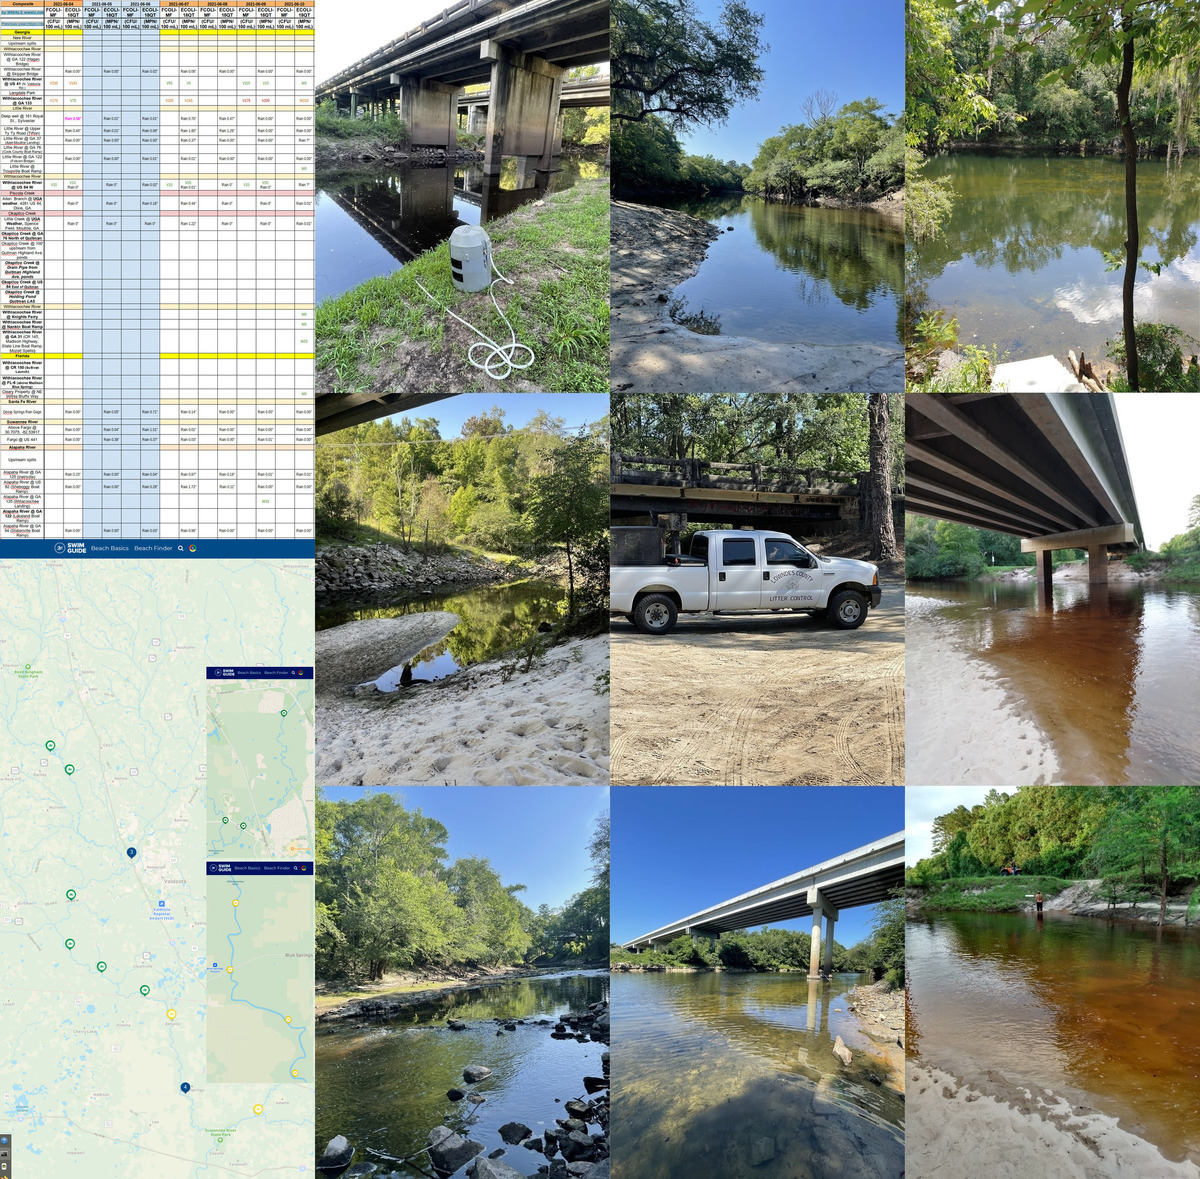 [Chart, Swim Guide, many river test sites]